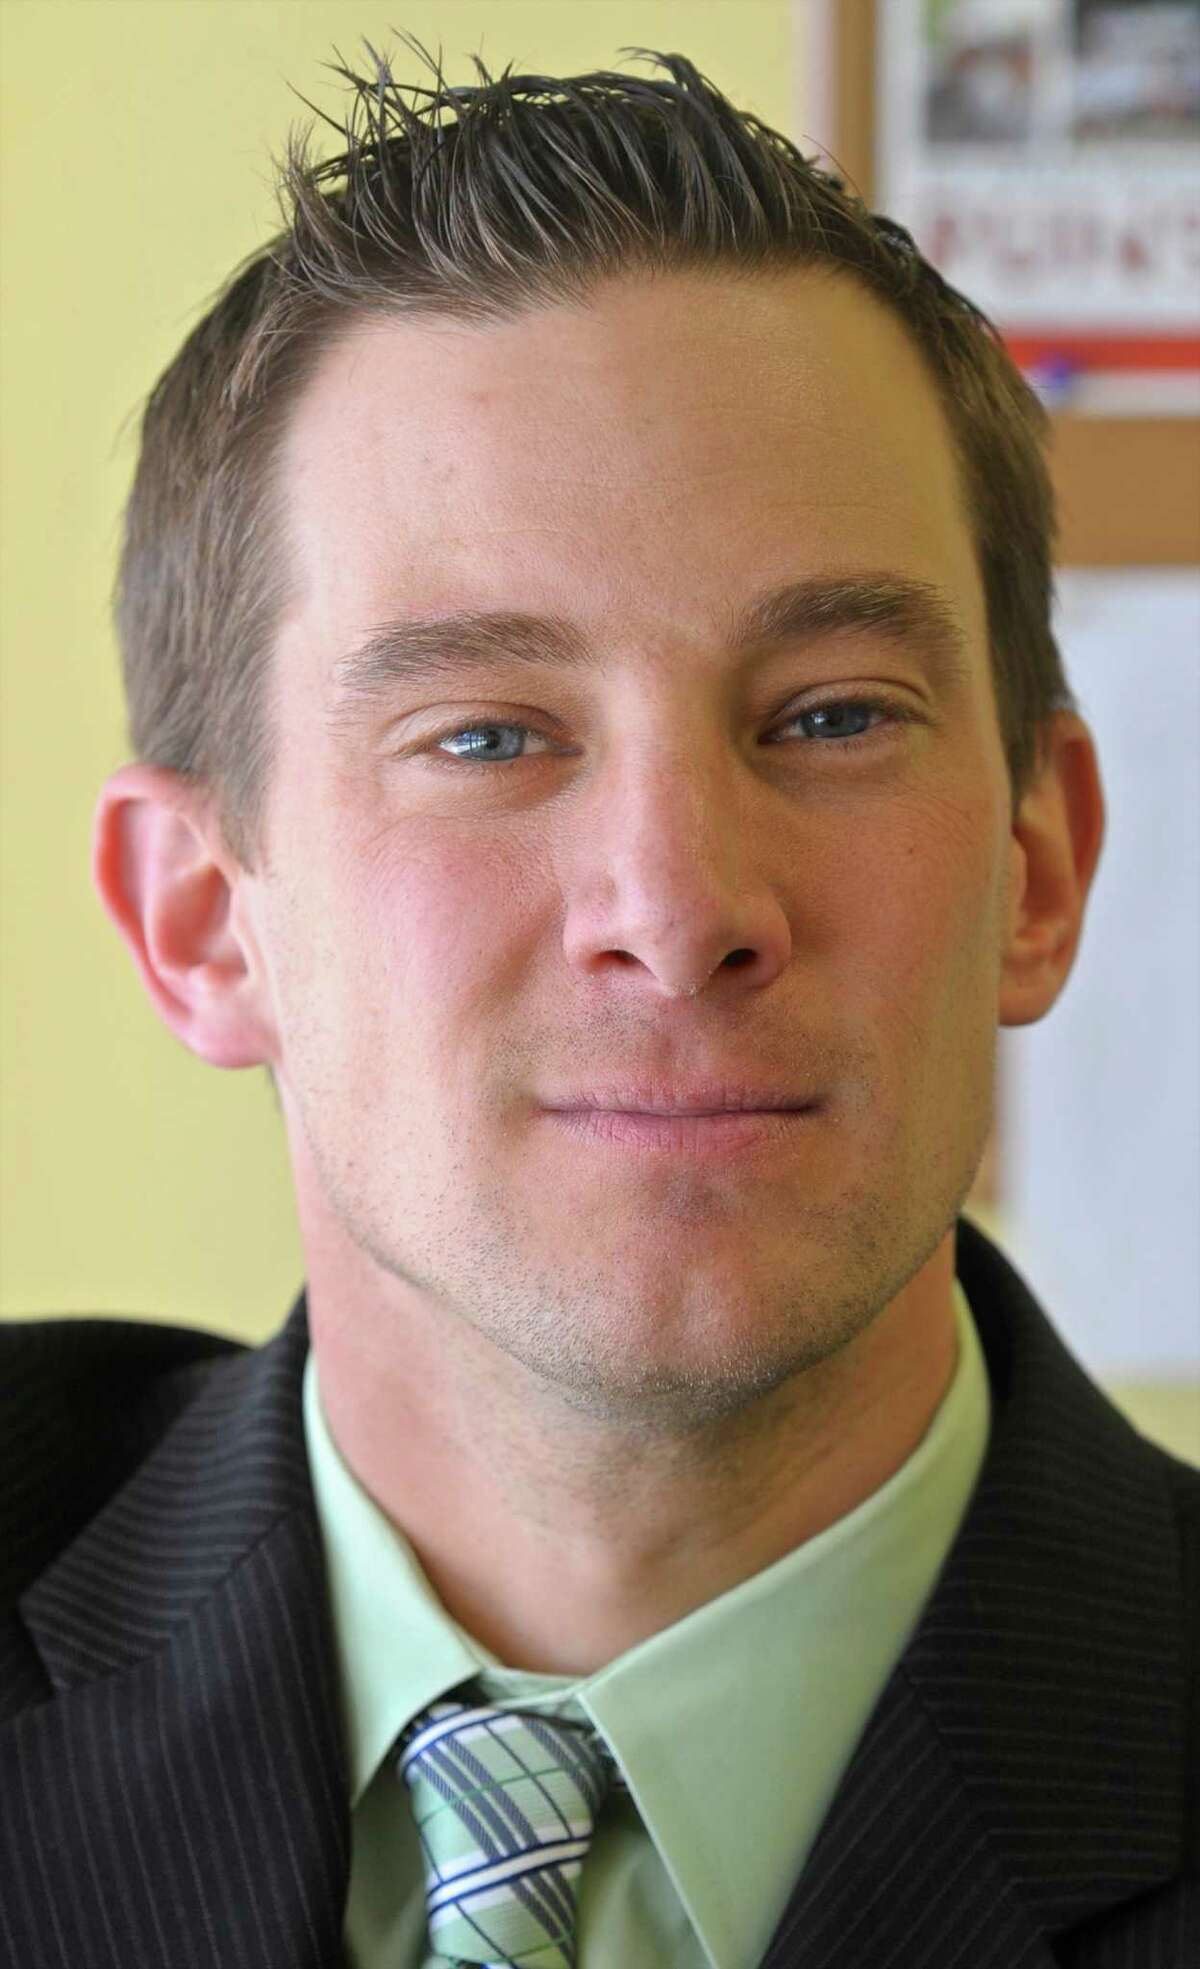 Christopher Longo, assistant principal of New Milford's Schaghticoke Middle School, has been appointed principal of the school effective July 1.